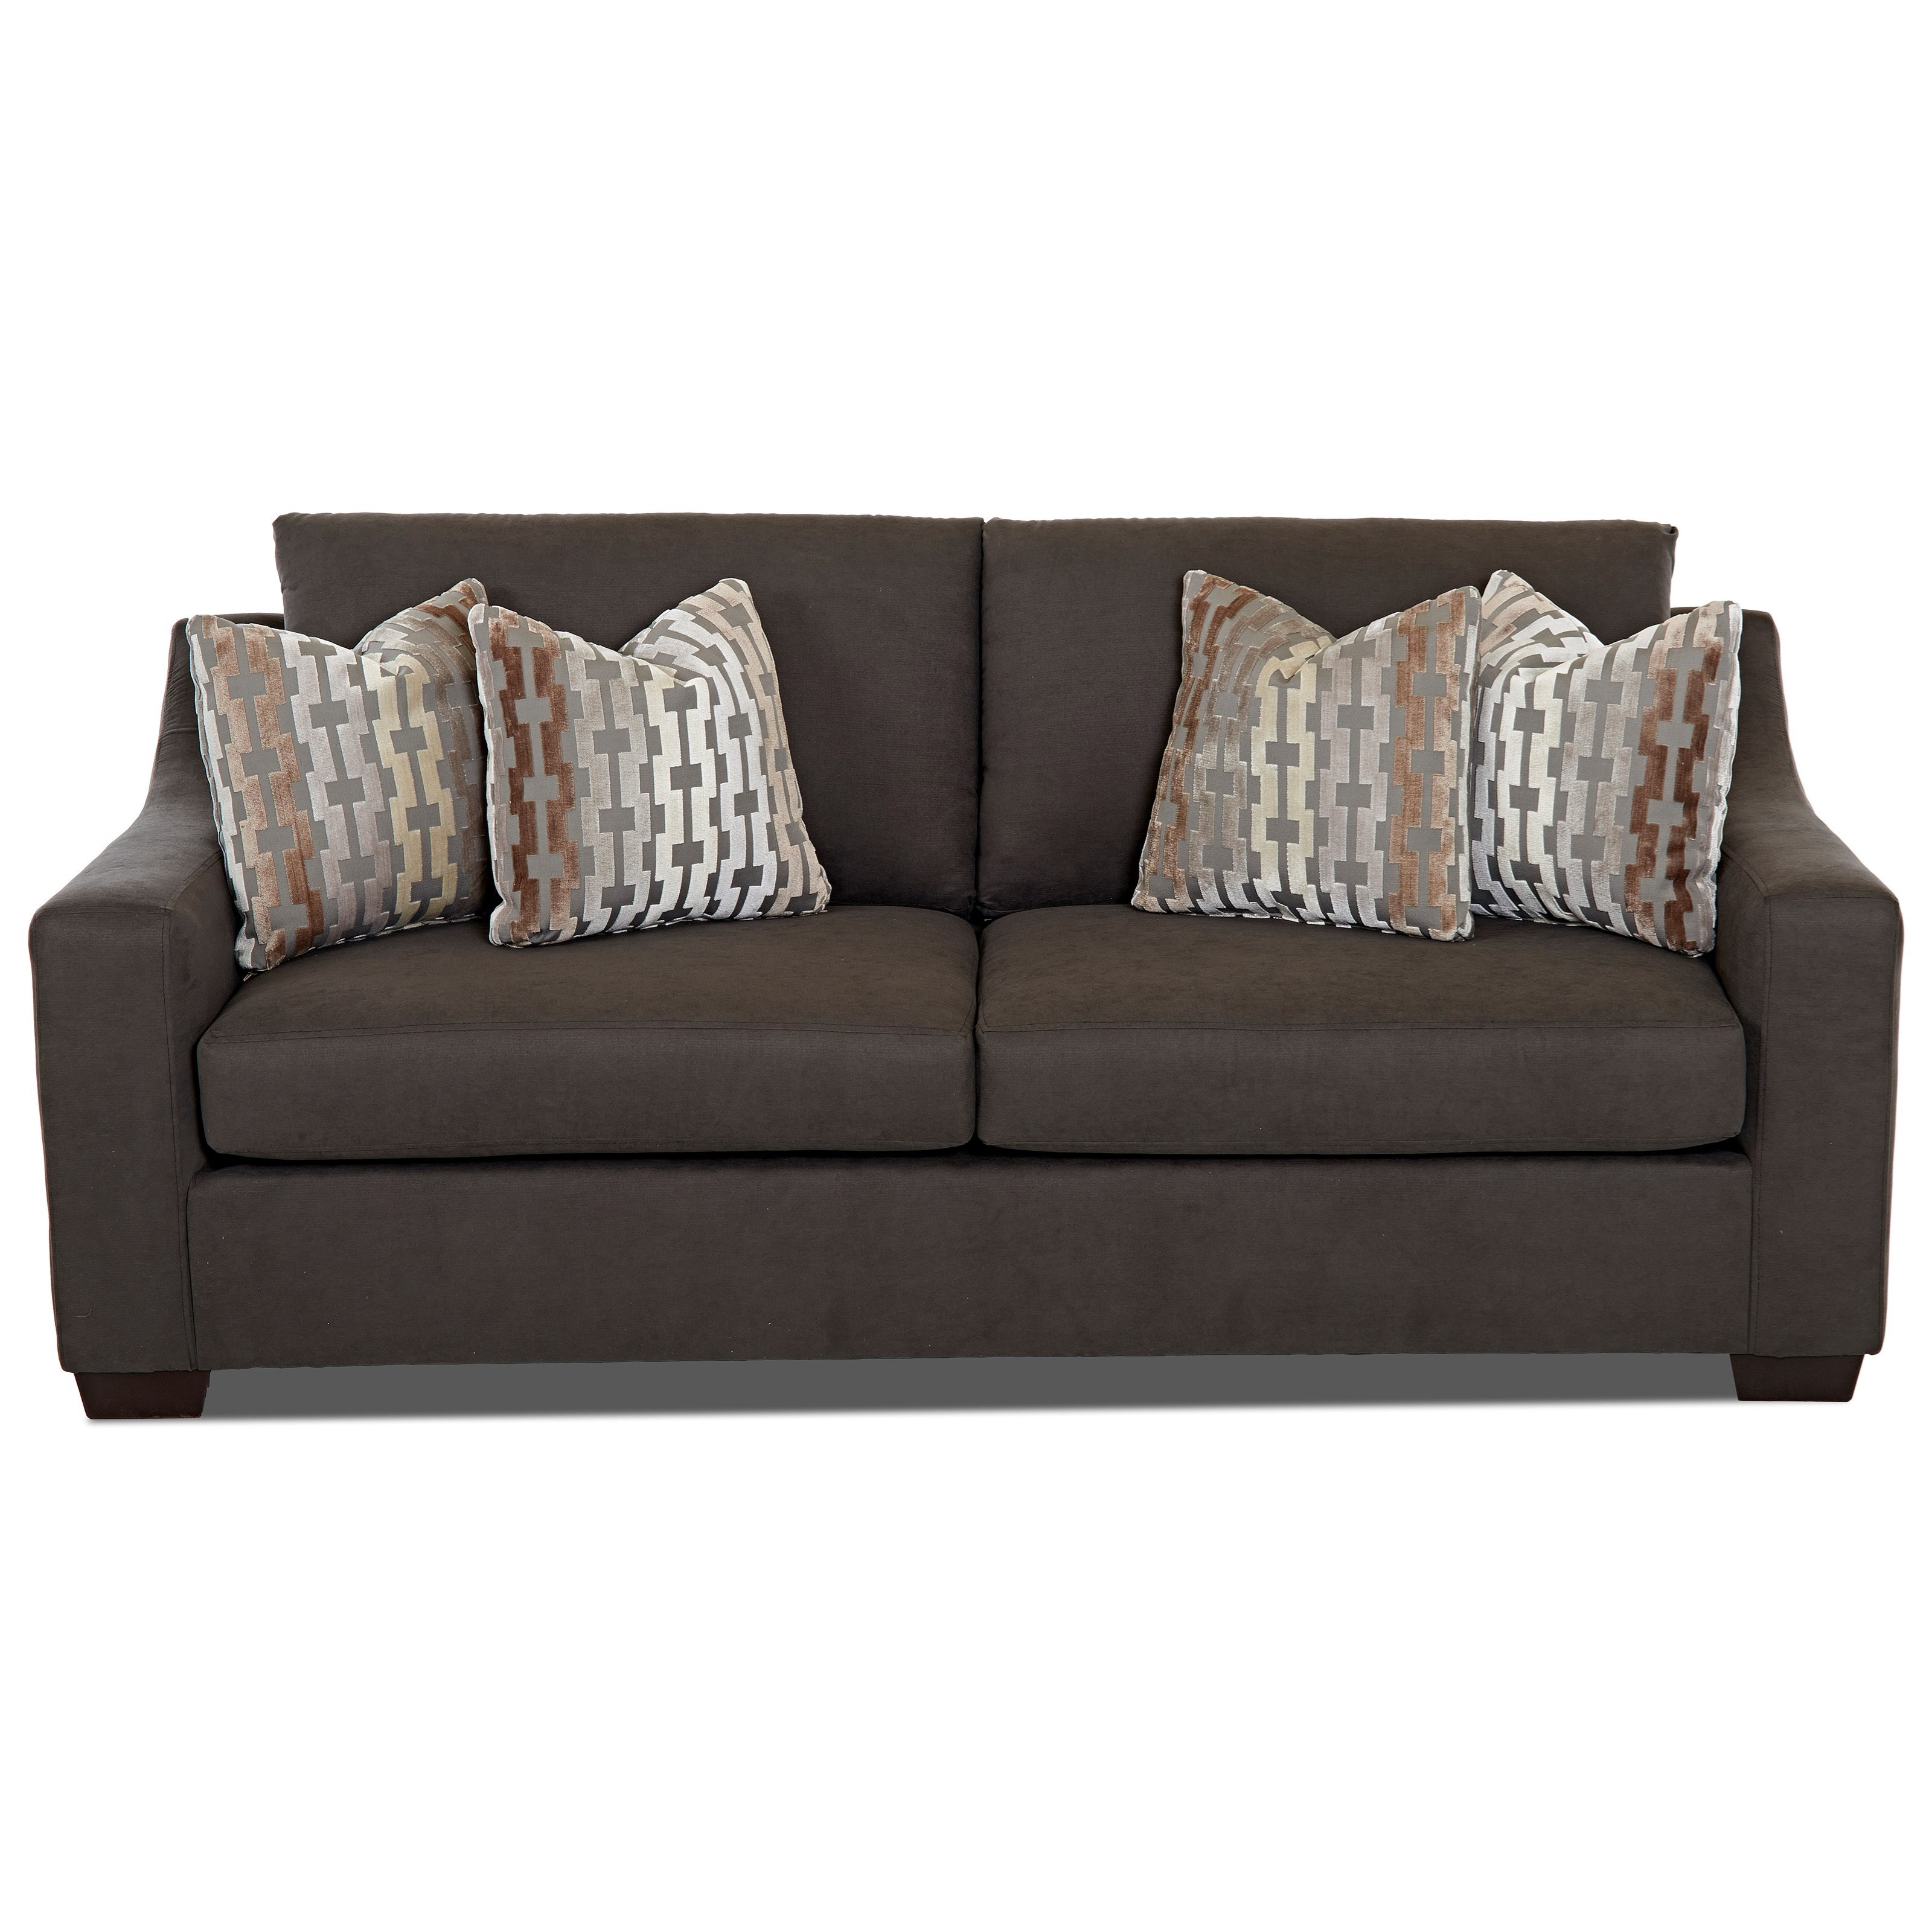 Contemporary Innserspring Sleeper Sofa with Sloped Arms and Loose